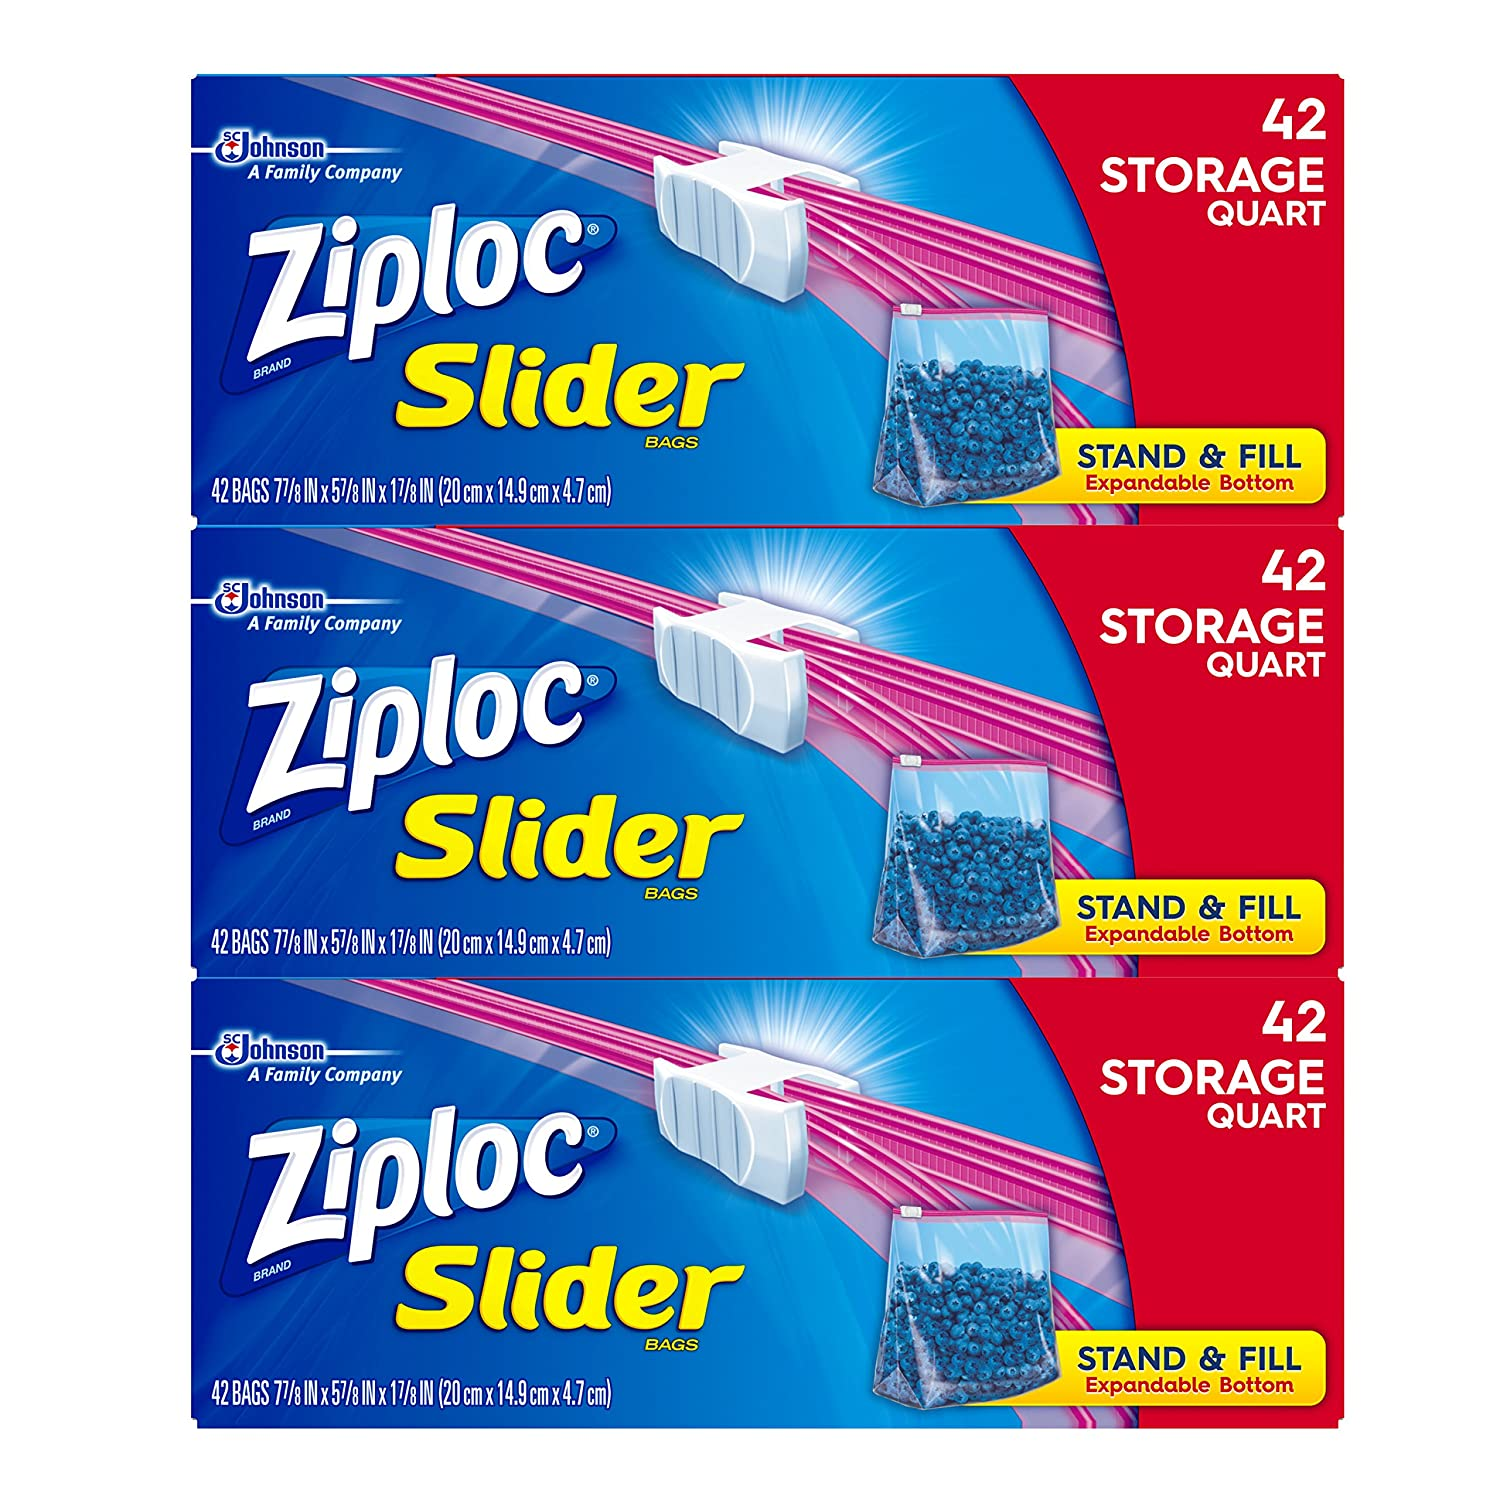 Ziploc Slider Storage Bags, Quart, 42 Count per pack, Pack of 3